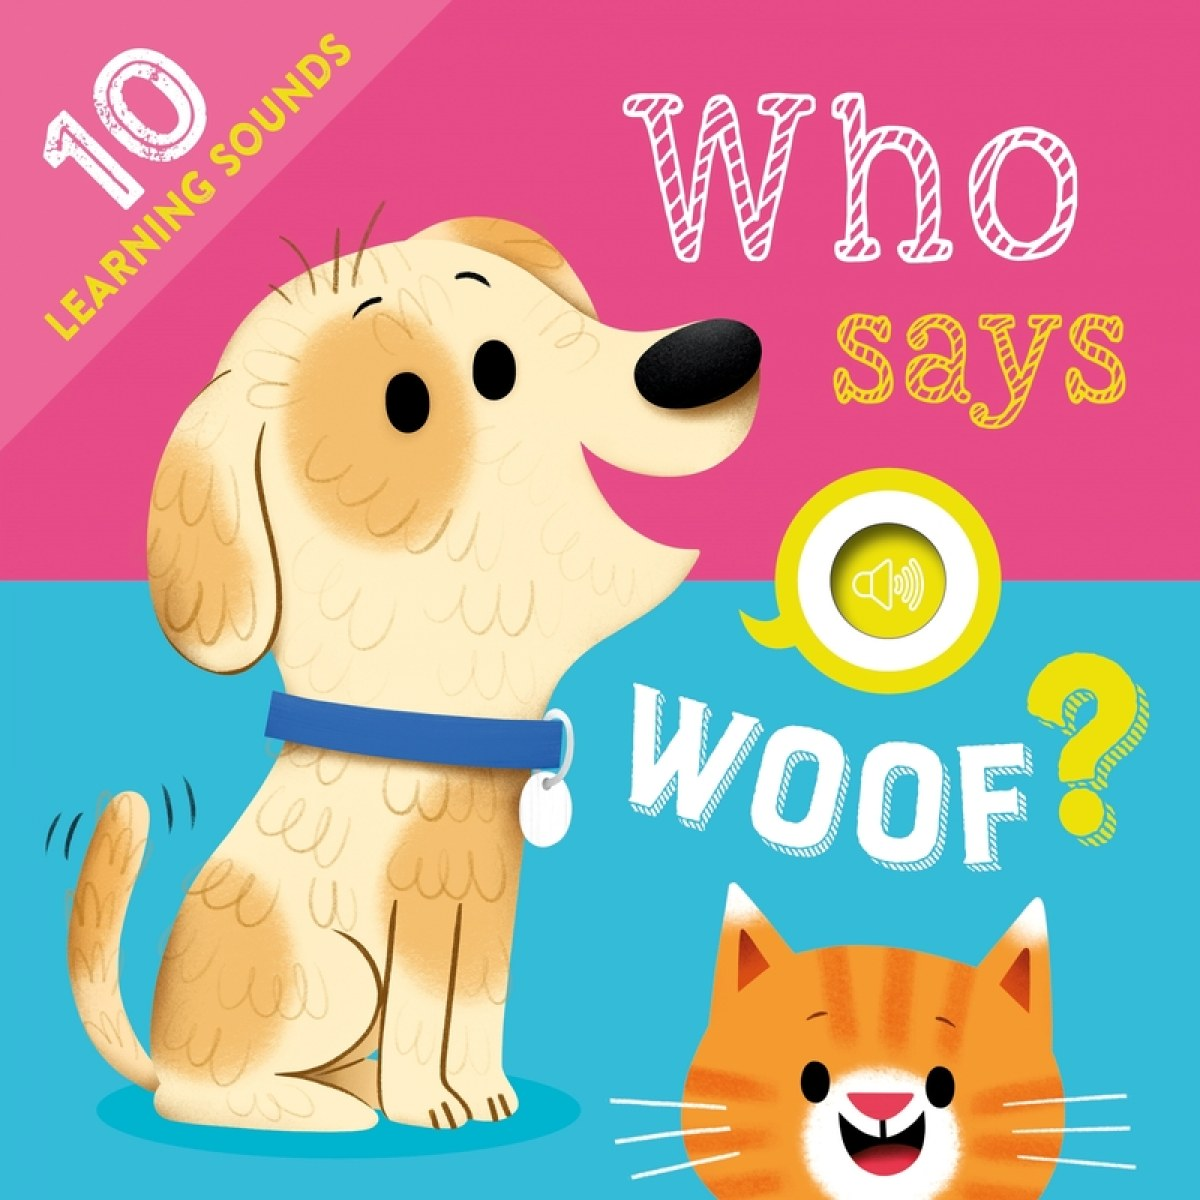 Who Says Woof?